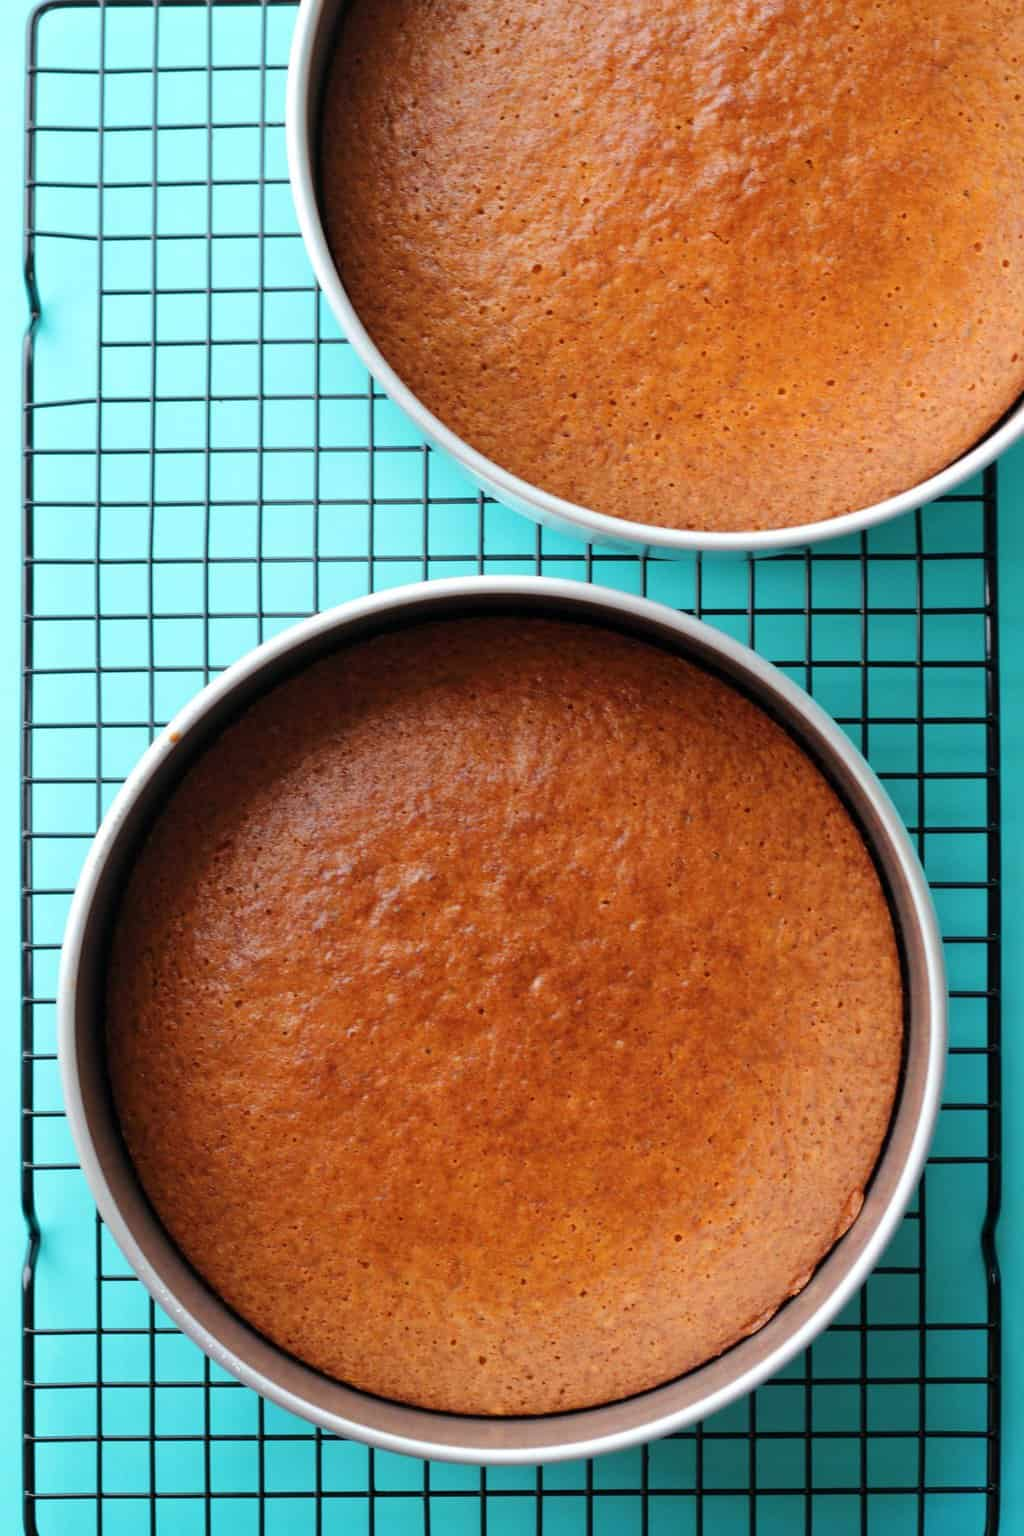 Vegan Lemon Cake in cake pans freshly baked and straight out of the oven.